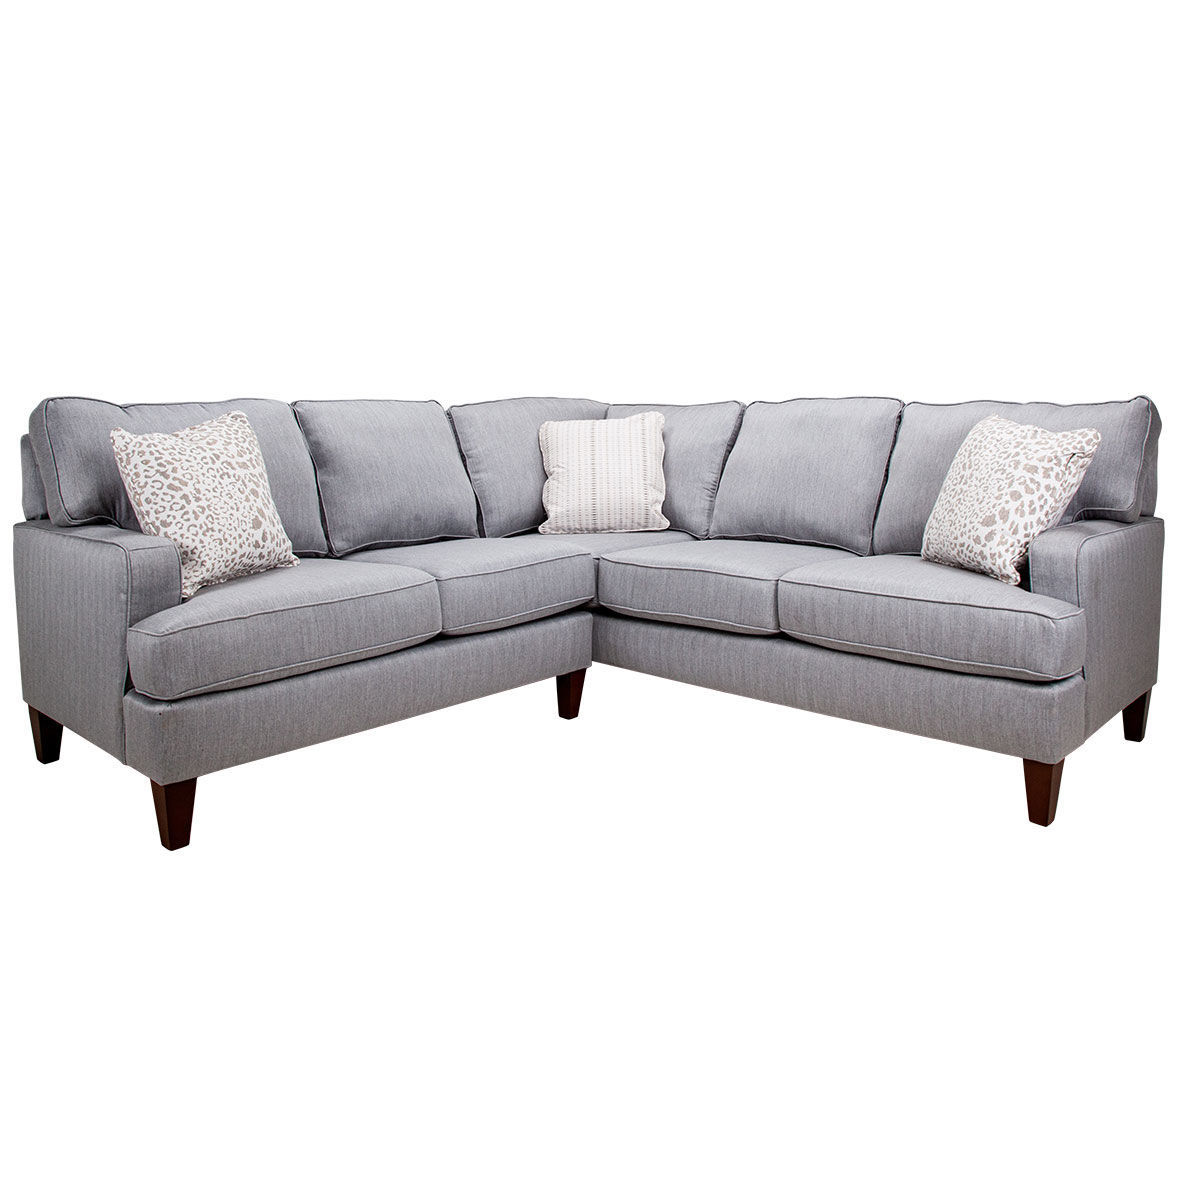 Picture of TIFFANY 2PC SUNBRELLA SECTIONAL